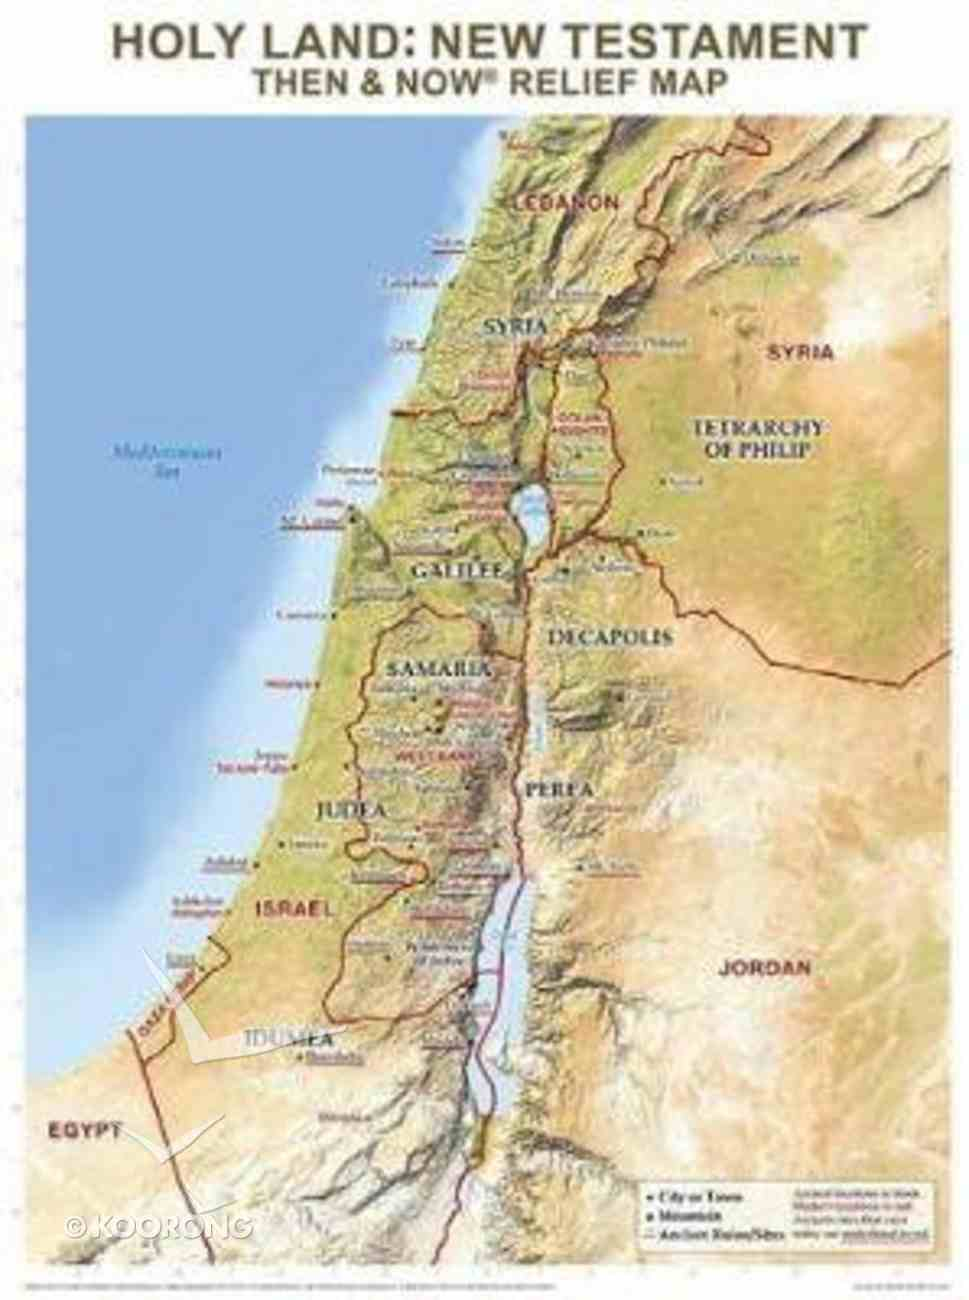 Holy Land: New Testament Then & Now Relief Map Poster